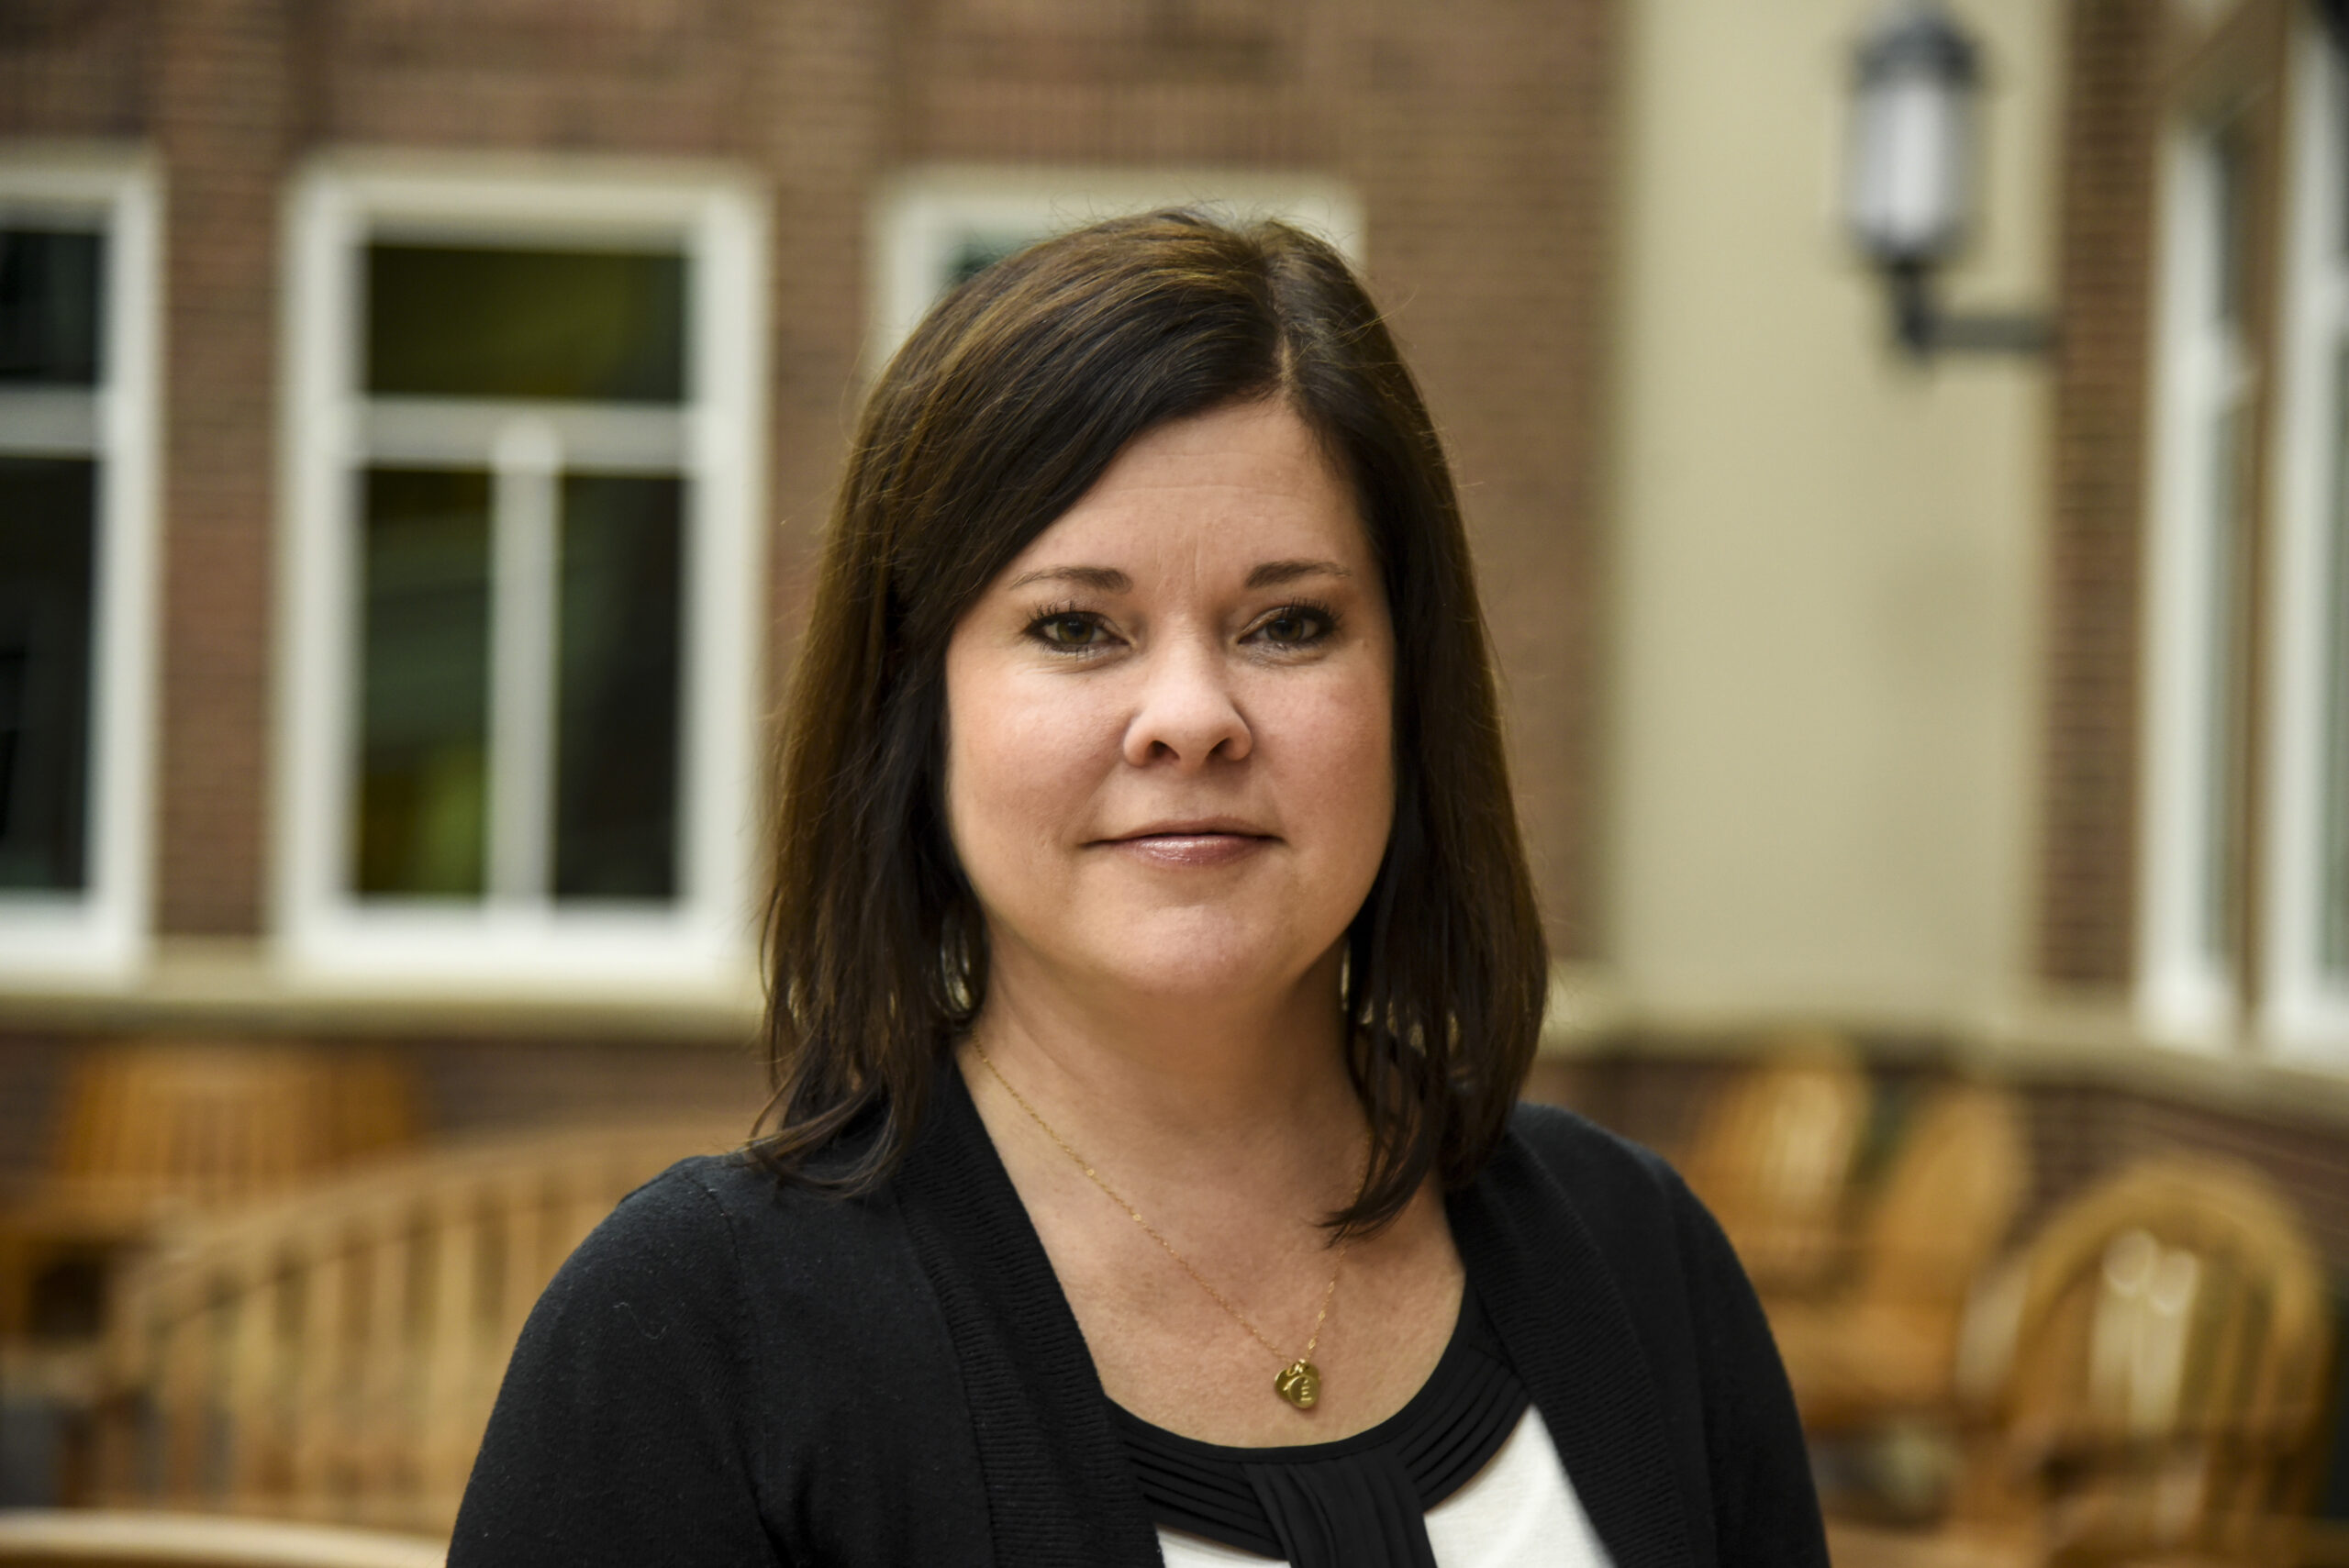 York principal announces departure for new opportunity